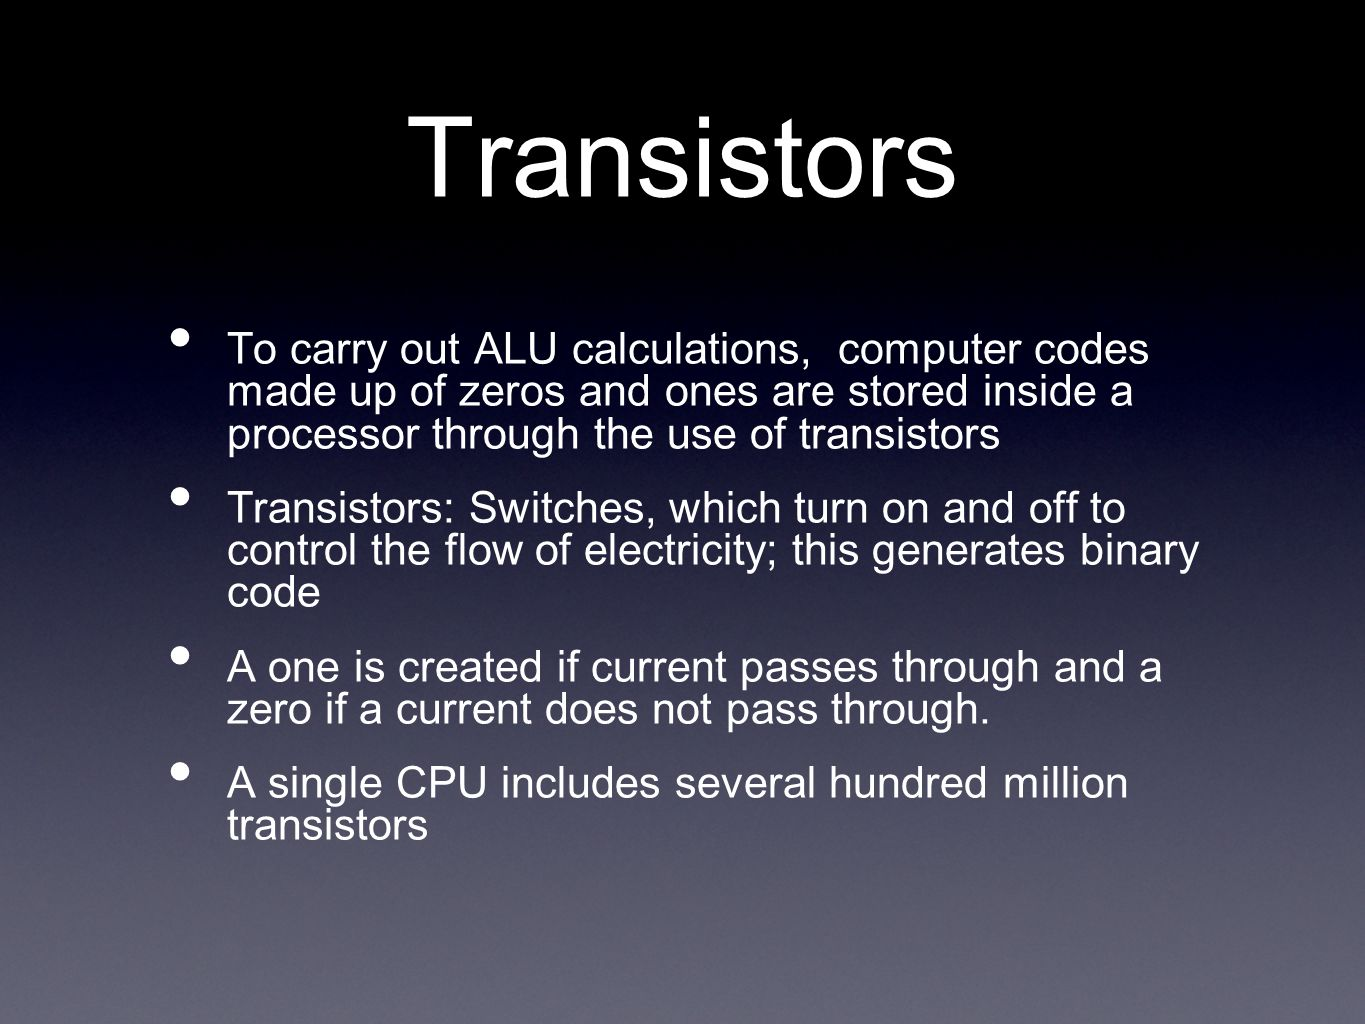 For a long time, processor clock speed was used as a measure of processor performance.